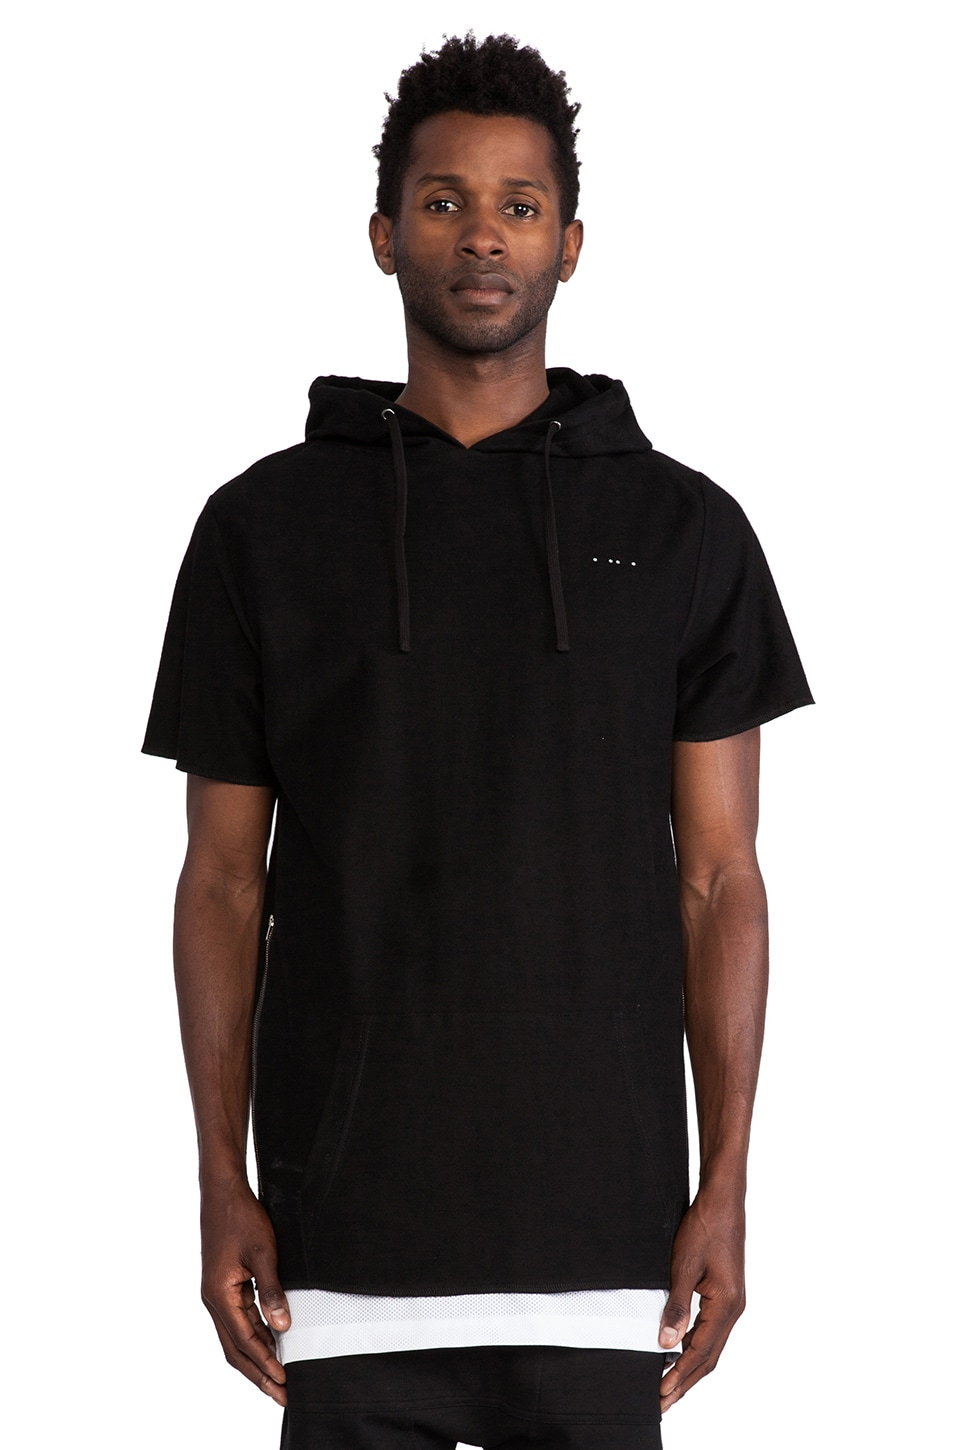 Publish MONO Jaron S/S Sweatshirt in Black